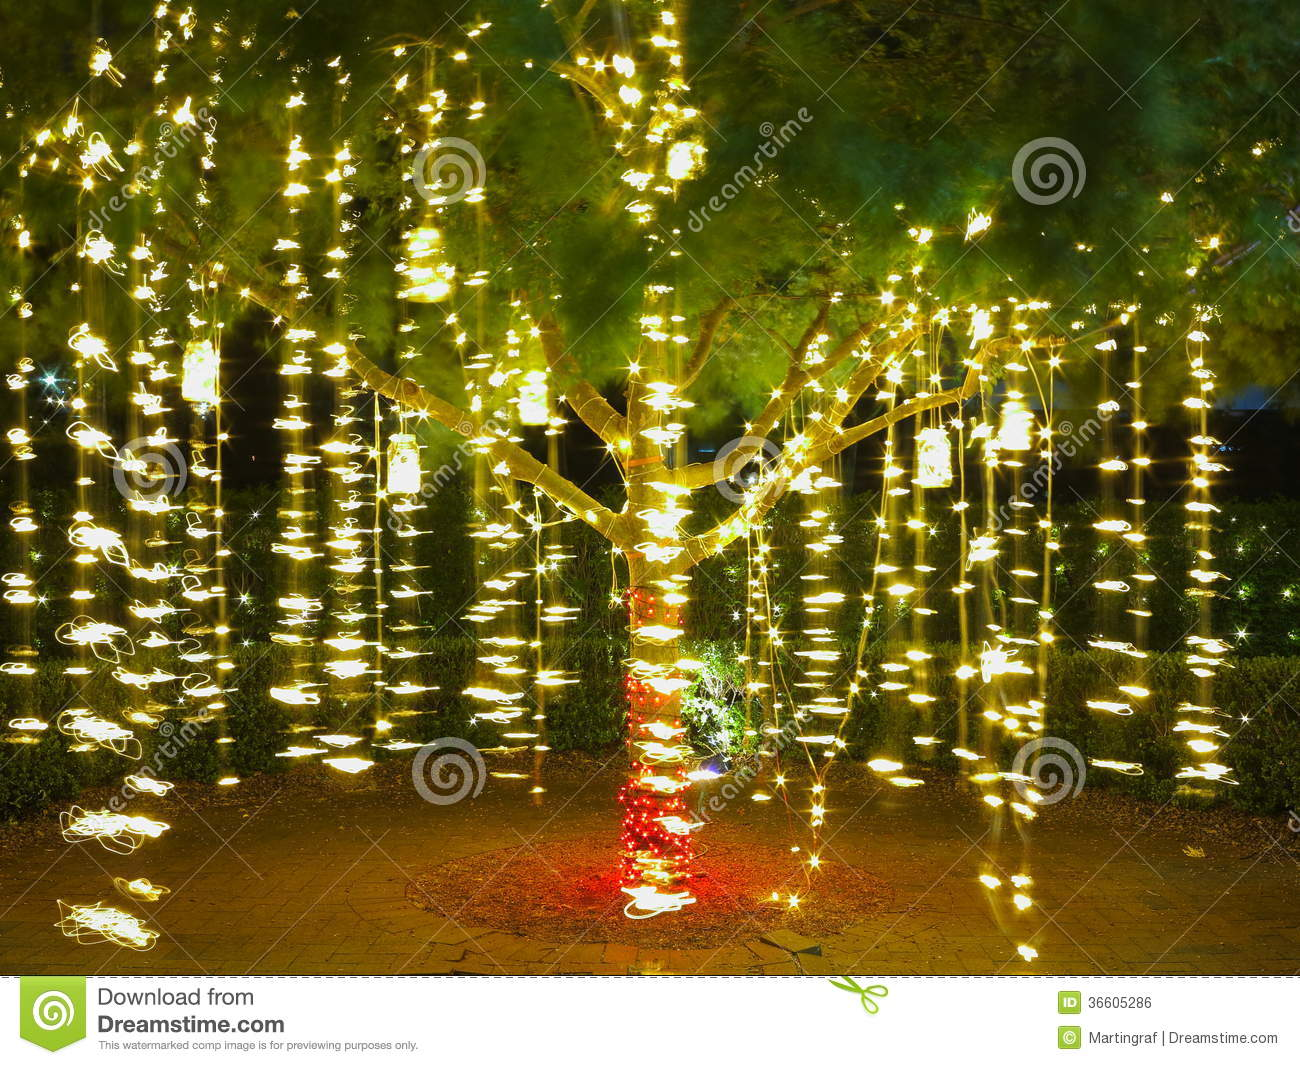 Holiday Lights In Tree / Summer Night Stock Photo - Image: 36605286